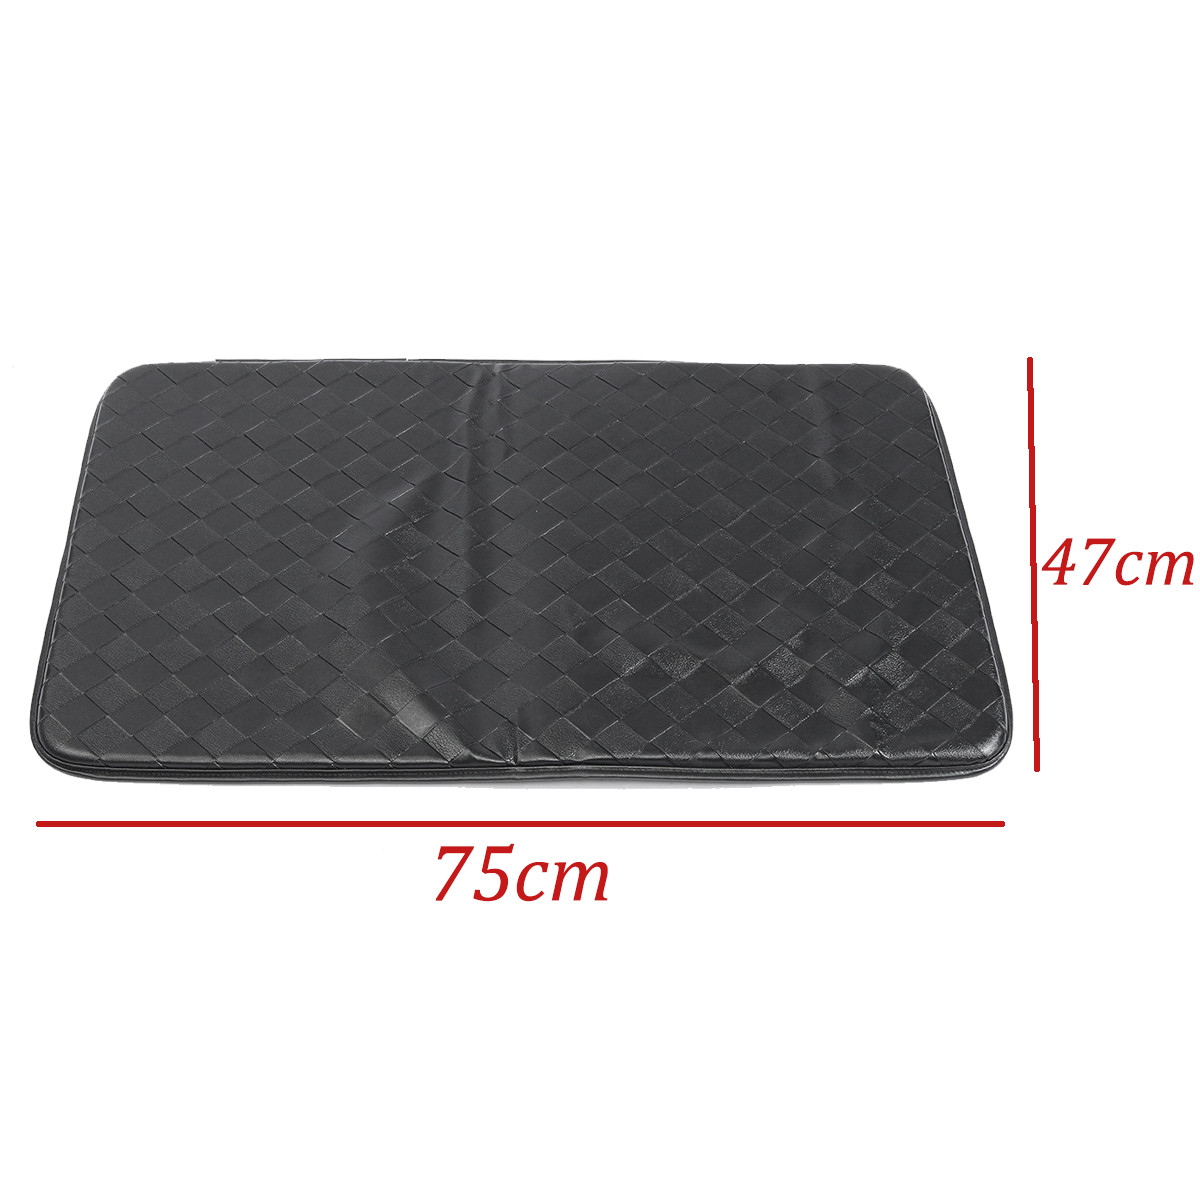 30 X 20 Anti Fatigue Cushion Non Slip Floor Mat Comfort